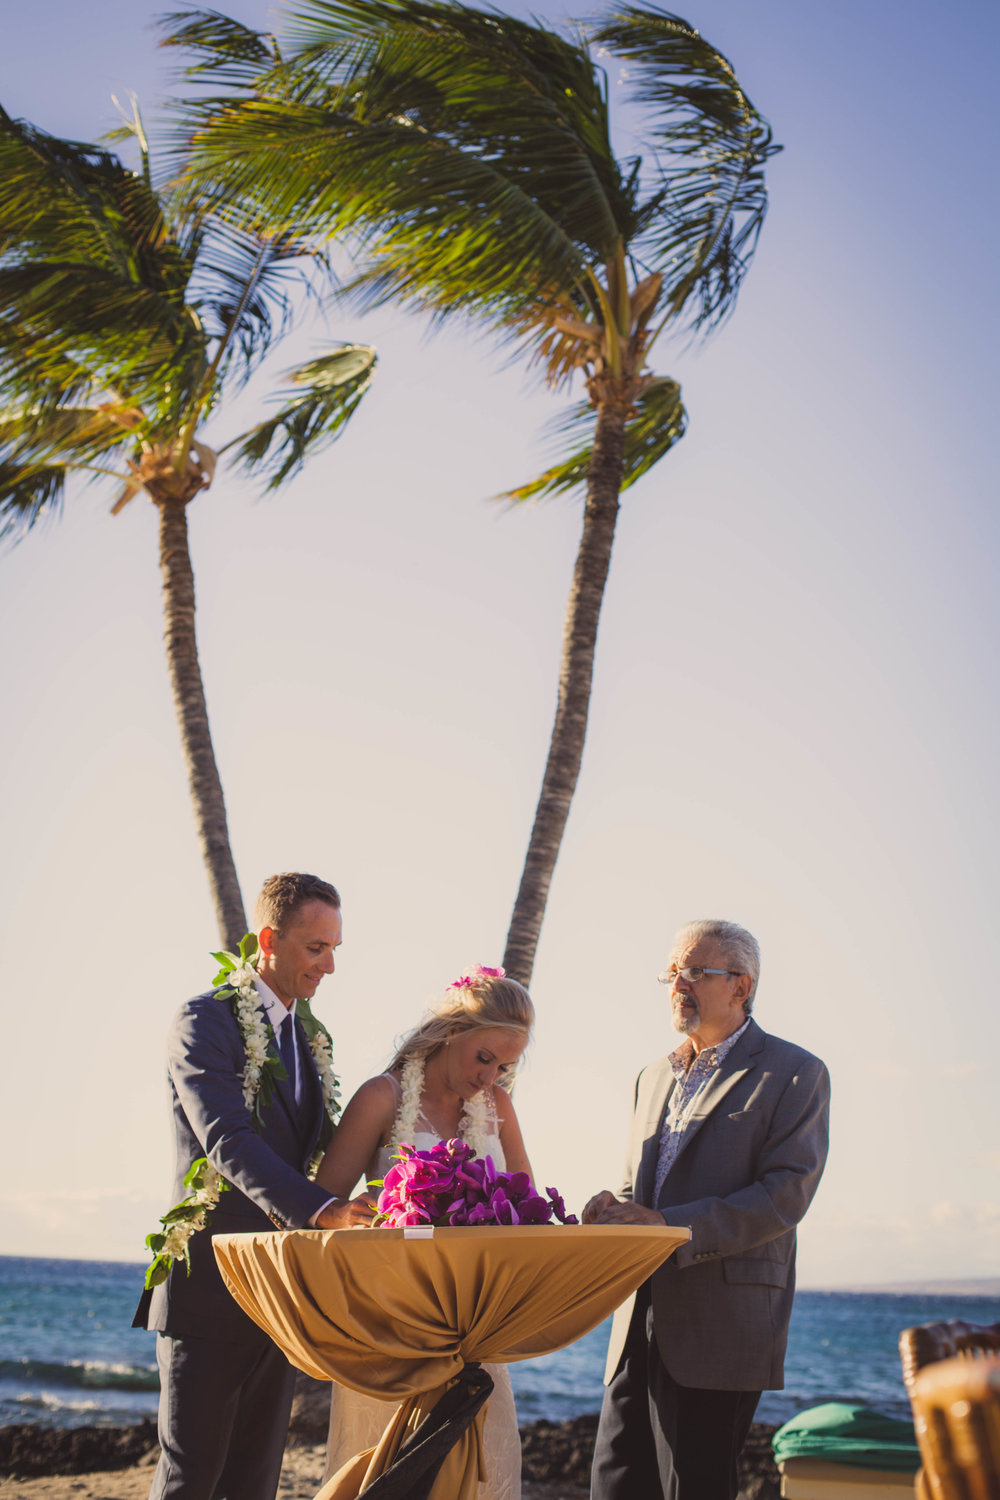 big island hawaii fairmont orchid beach wedding © kelilina photography 20170812175747-1.jpg